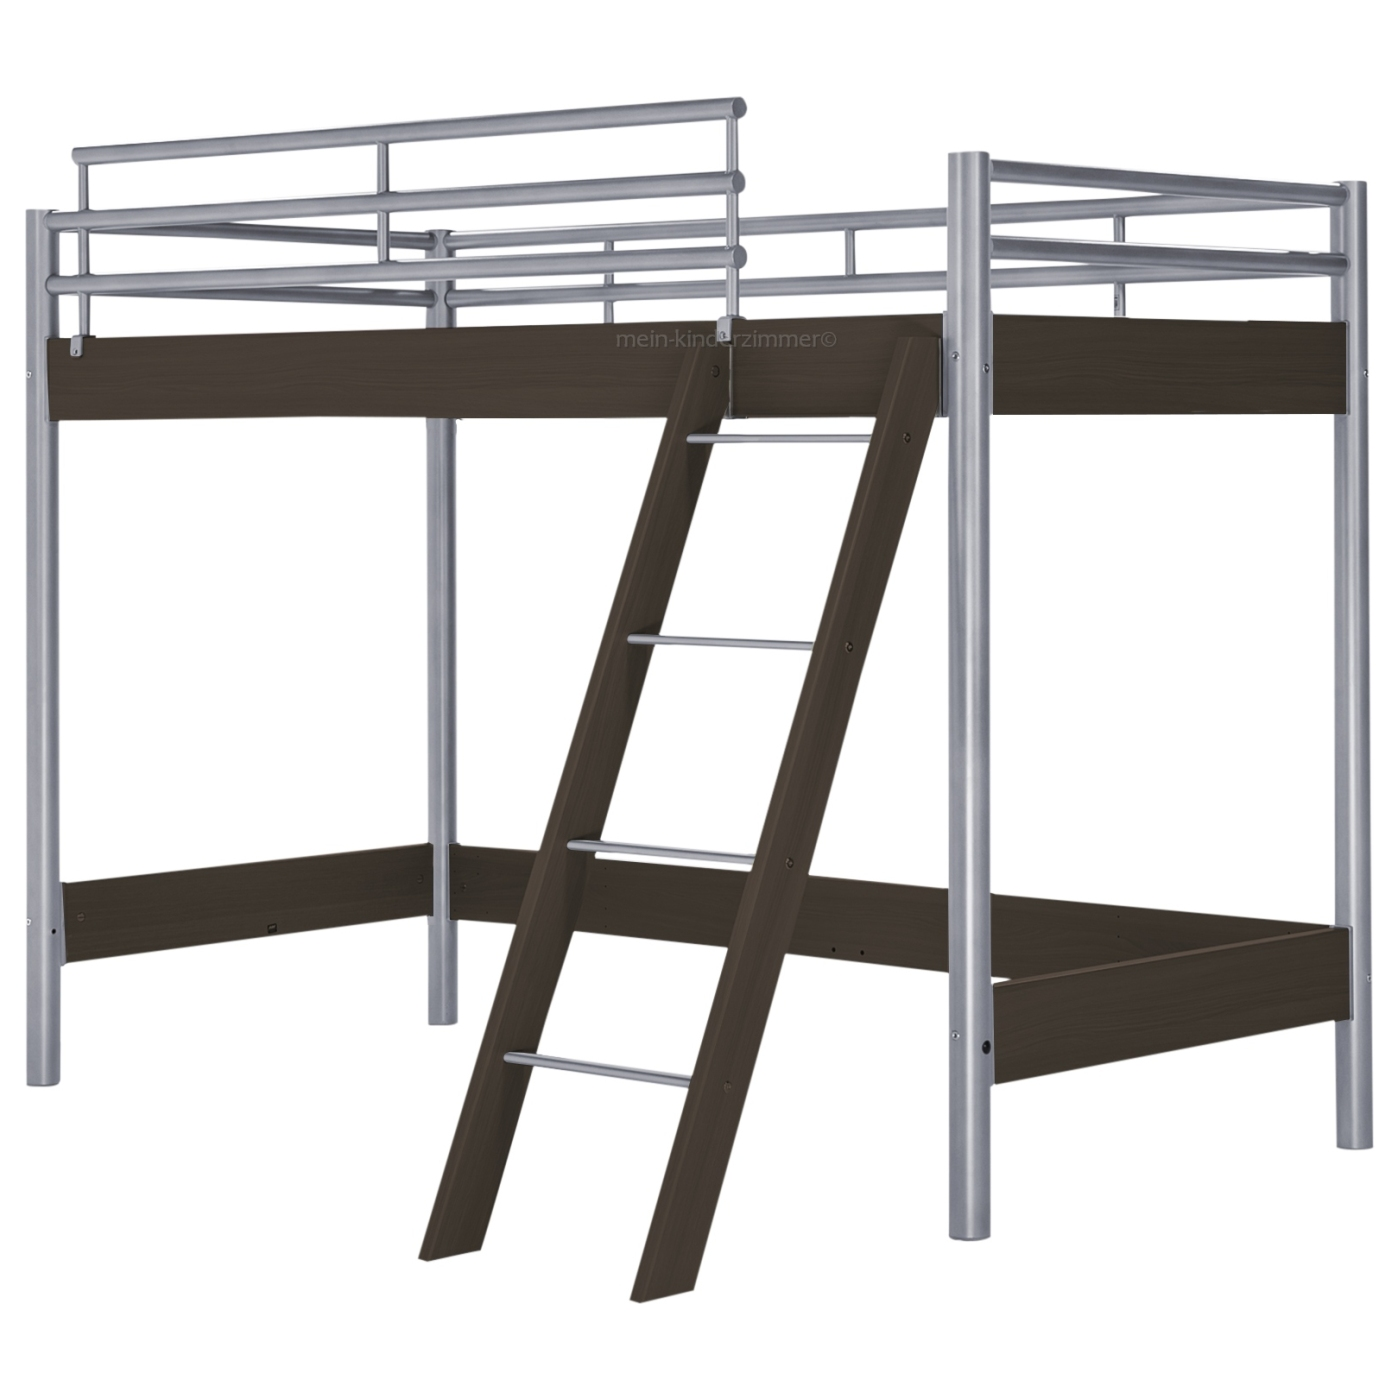 hasena midi 301 hochbett 90 cm ferrara wenge mit treppe bei mein kinderzimmer ch kaufen. Black Bedroom Furniture Sets. Home Design Ideas